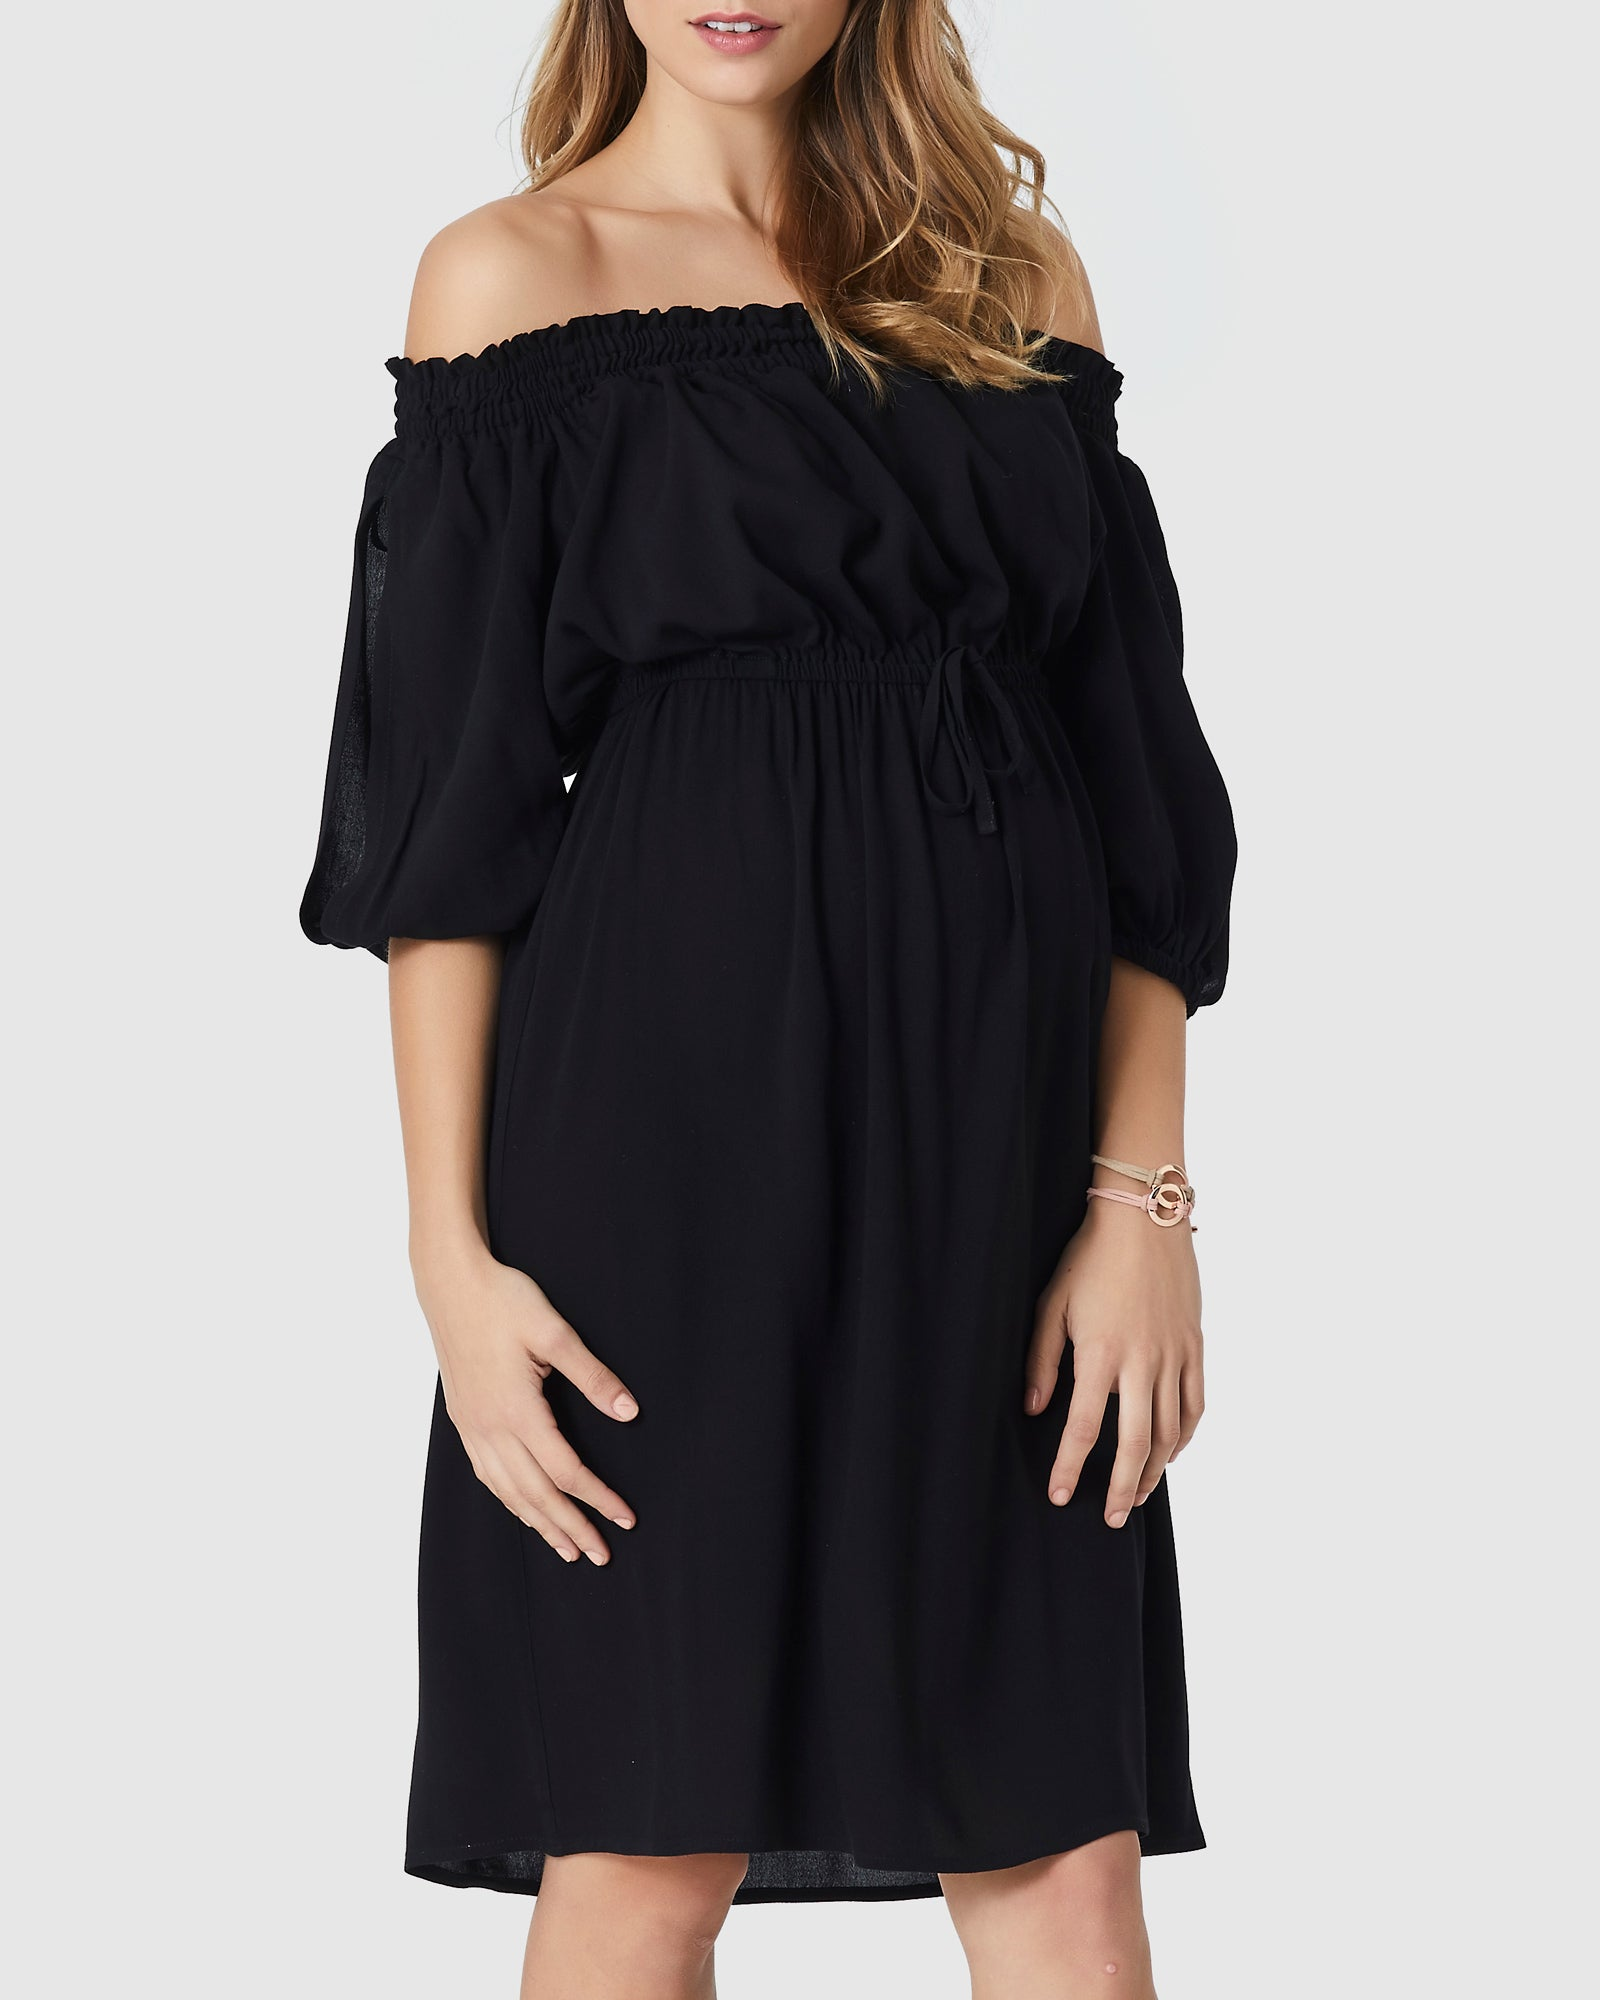 Alecia Dress (outlet)